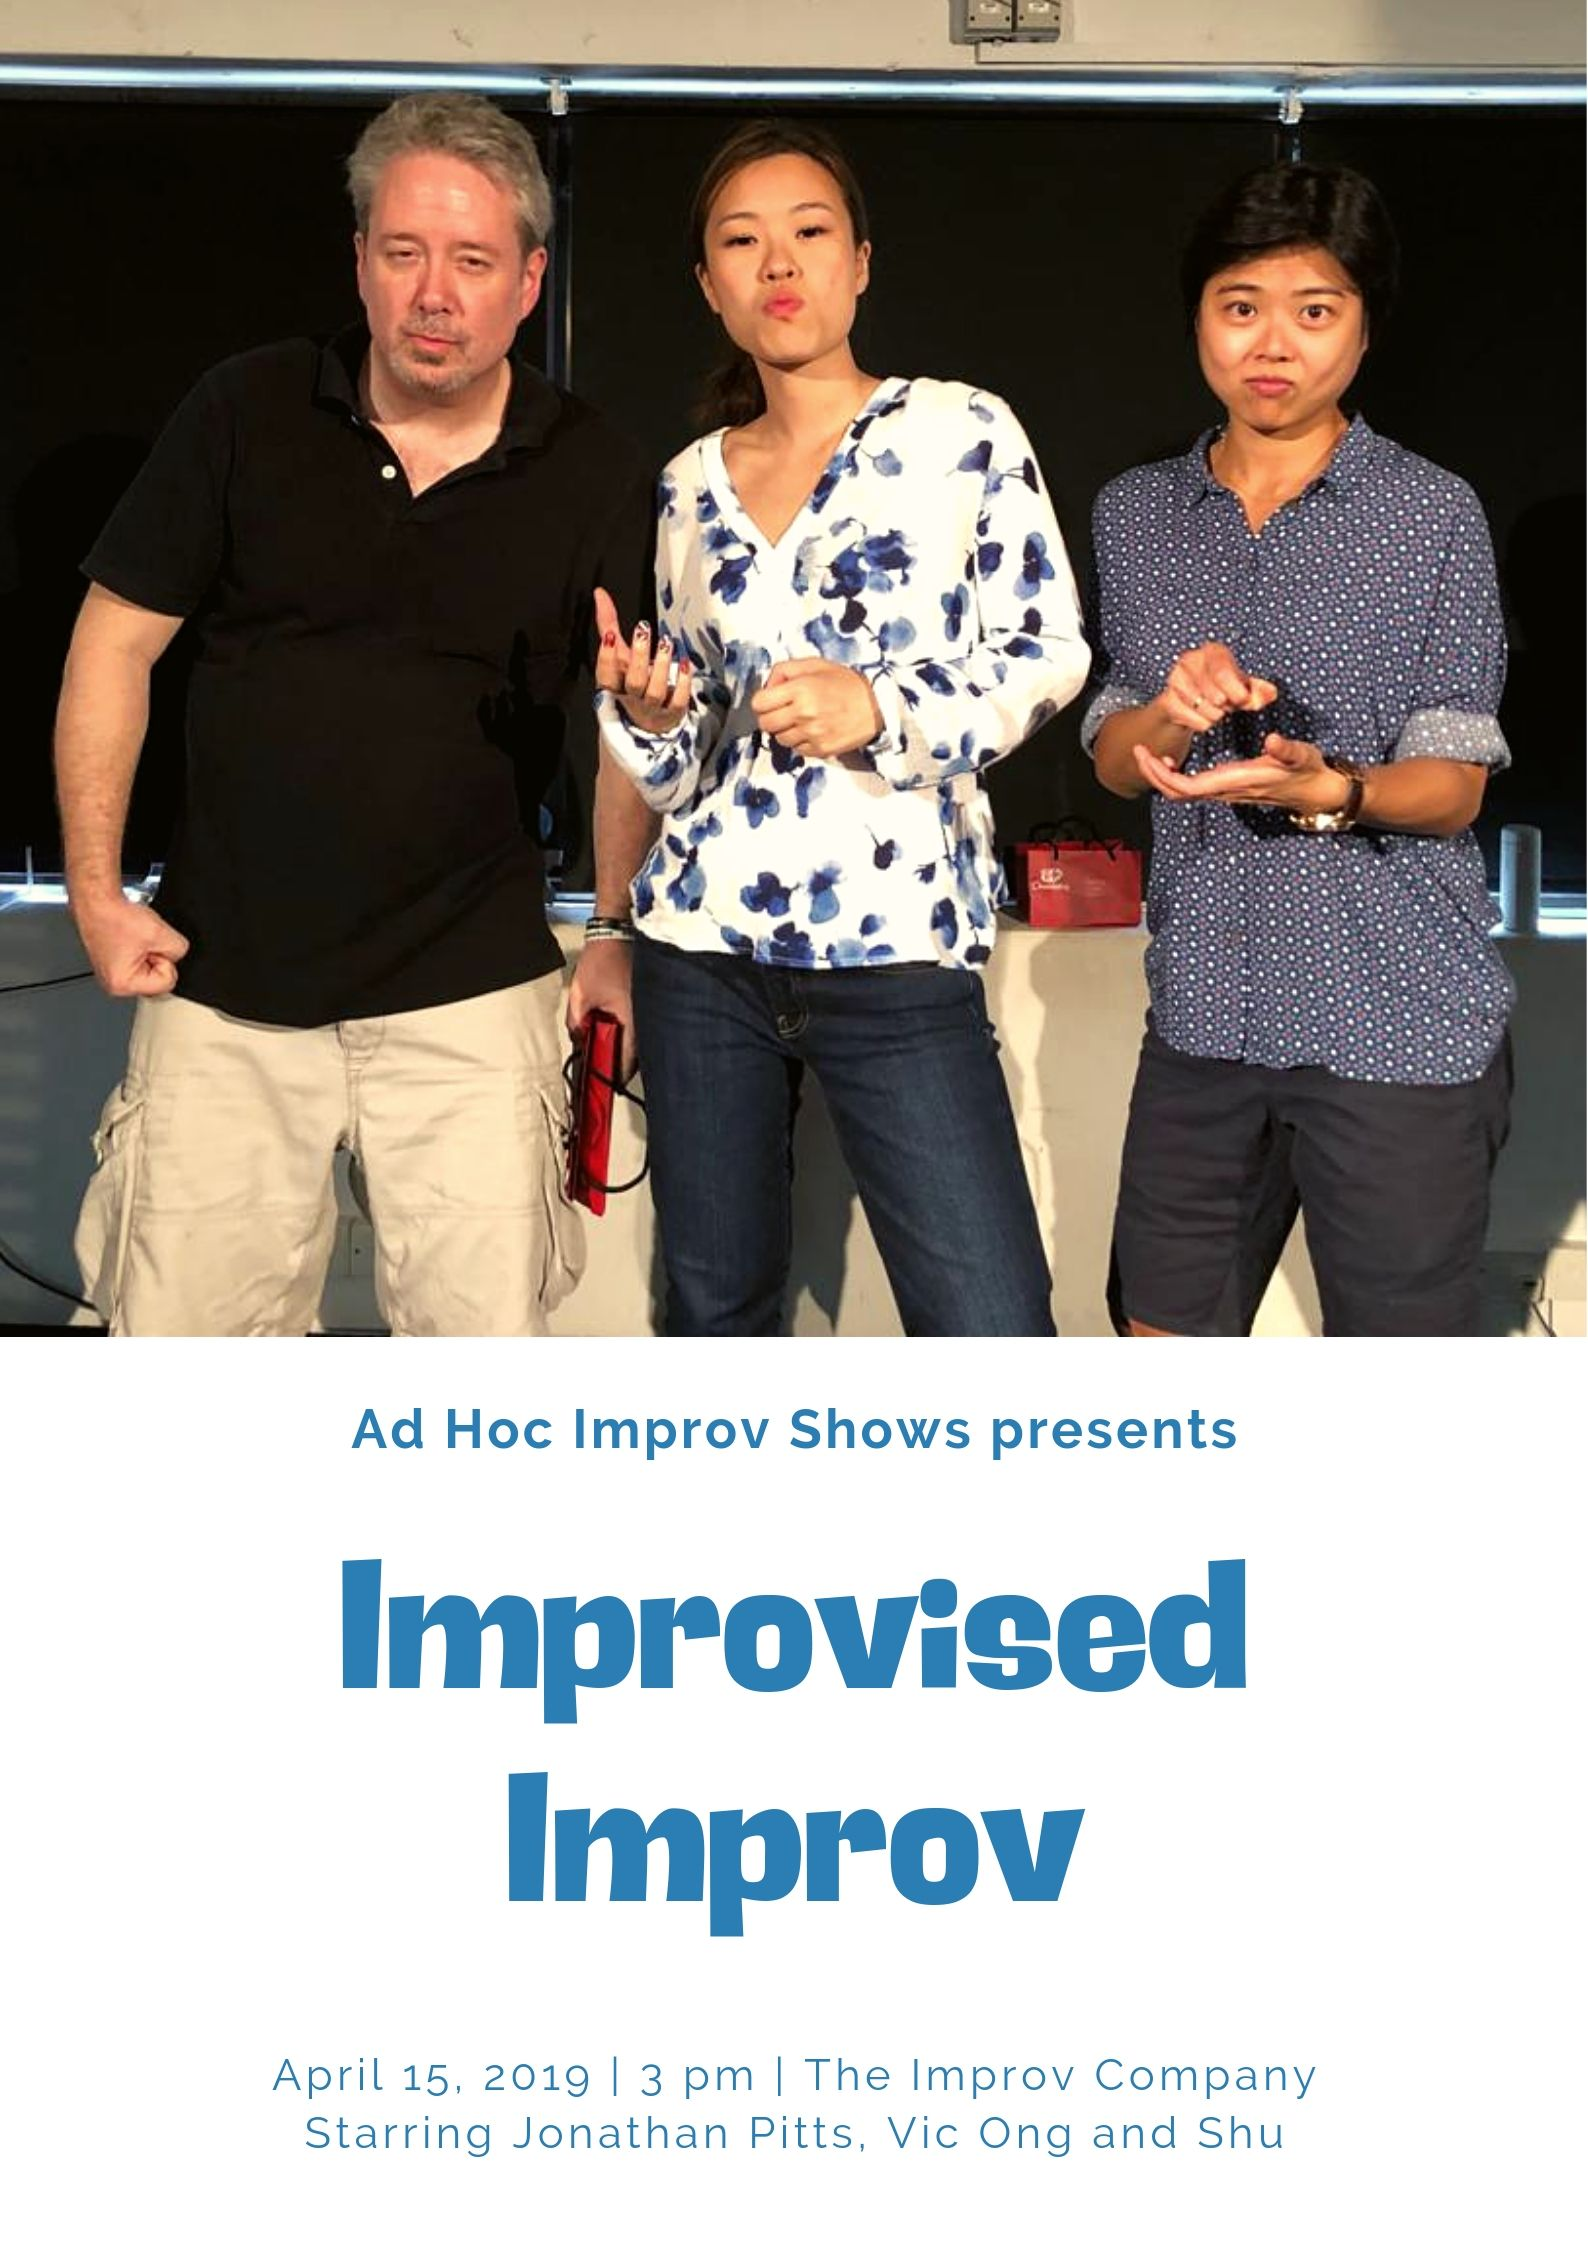 Improvised Improv